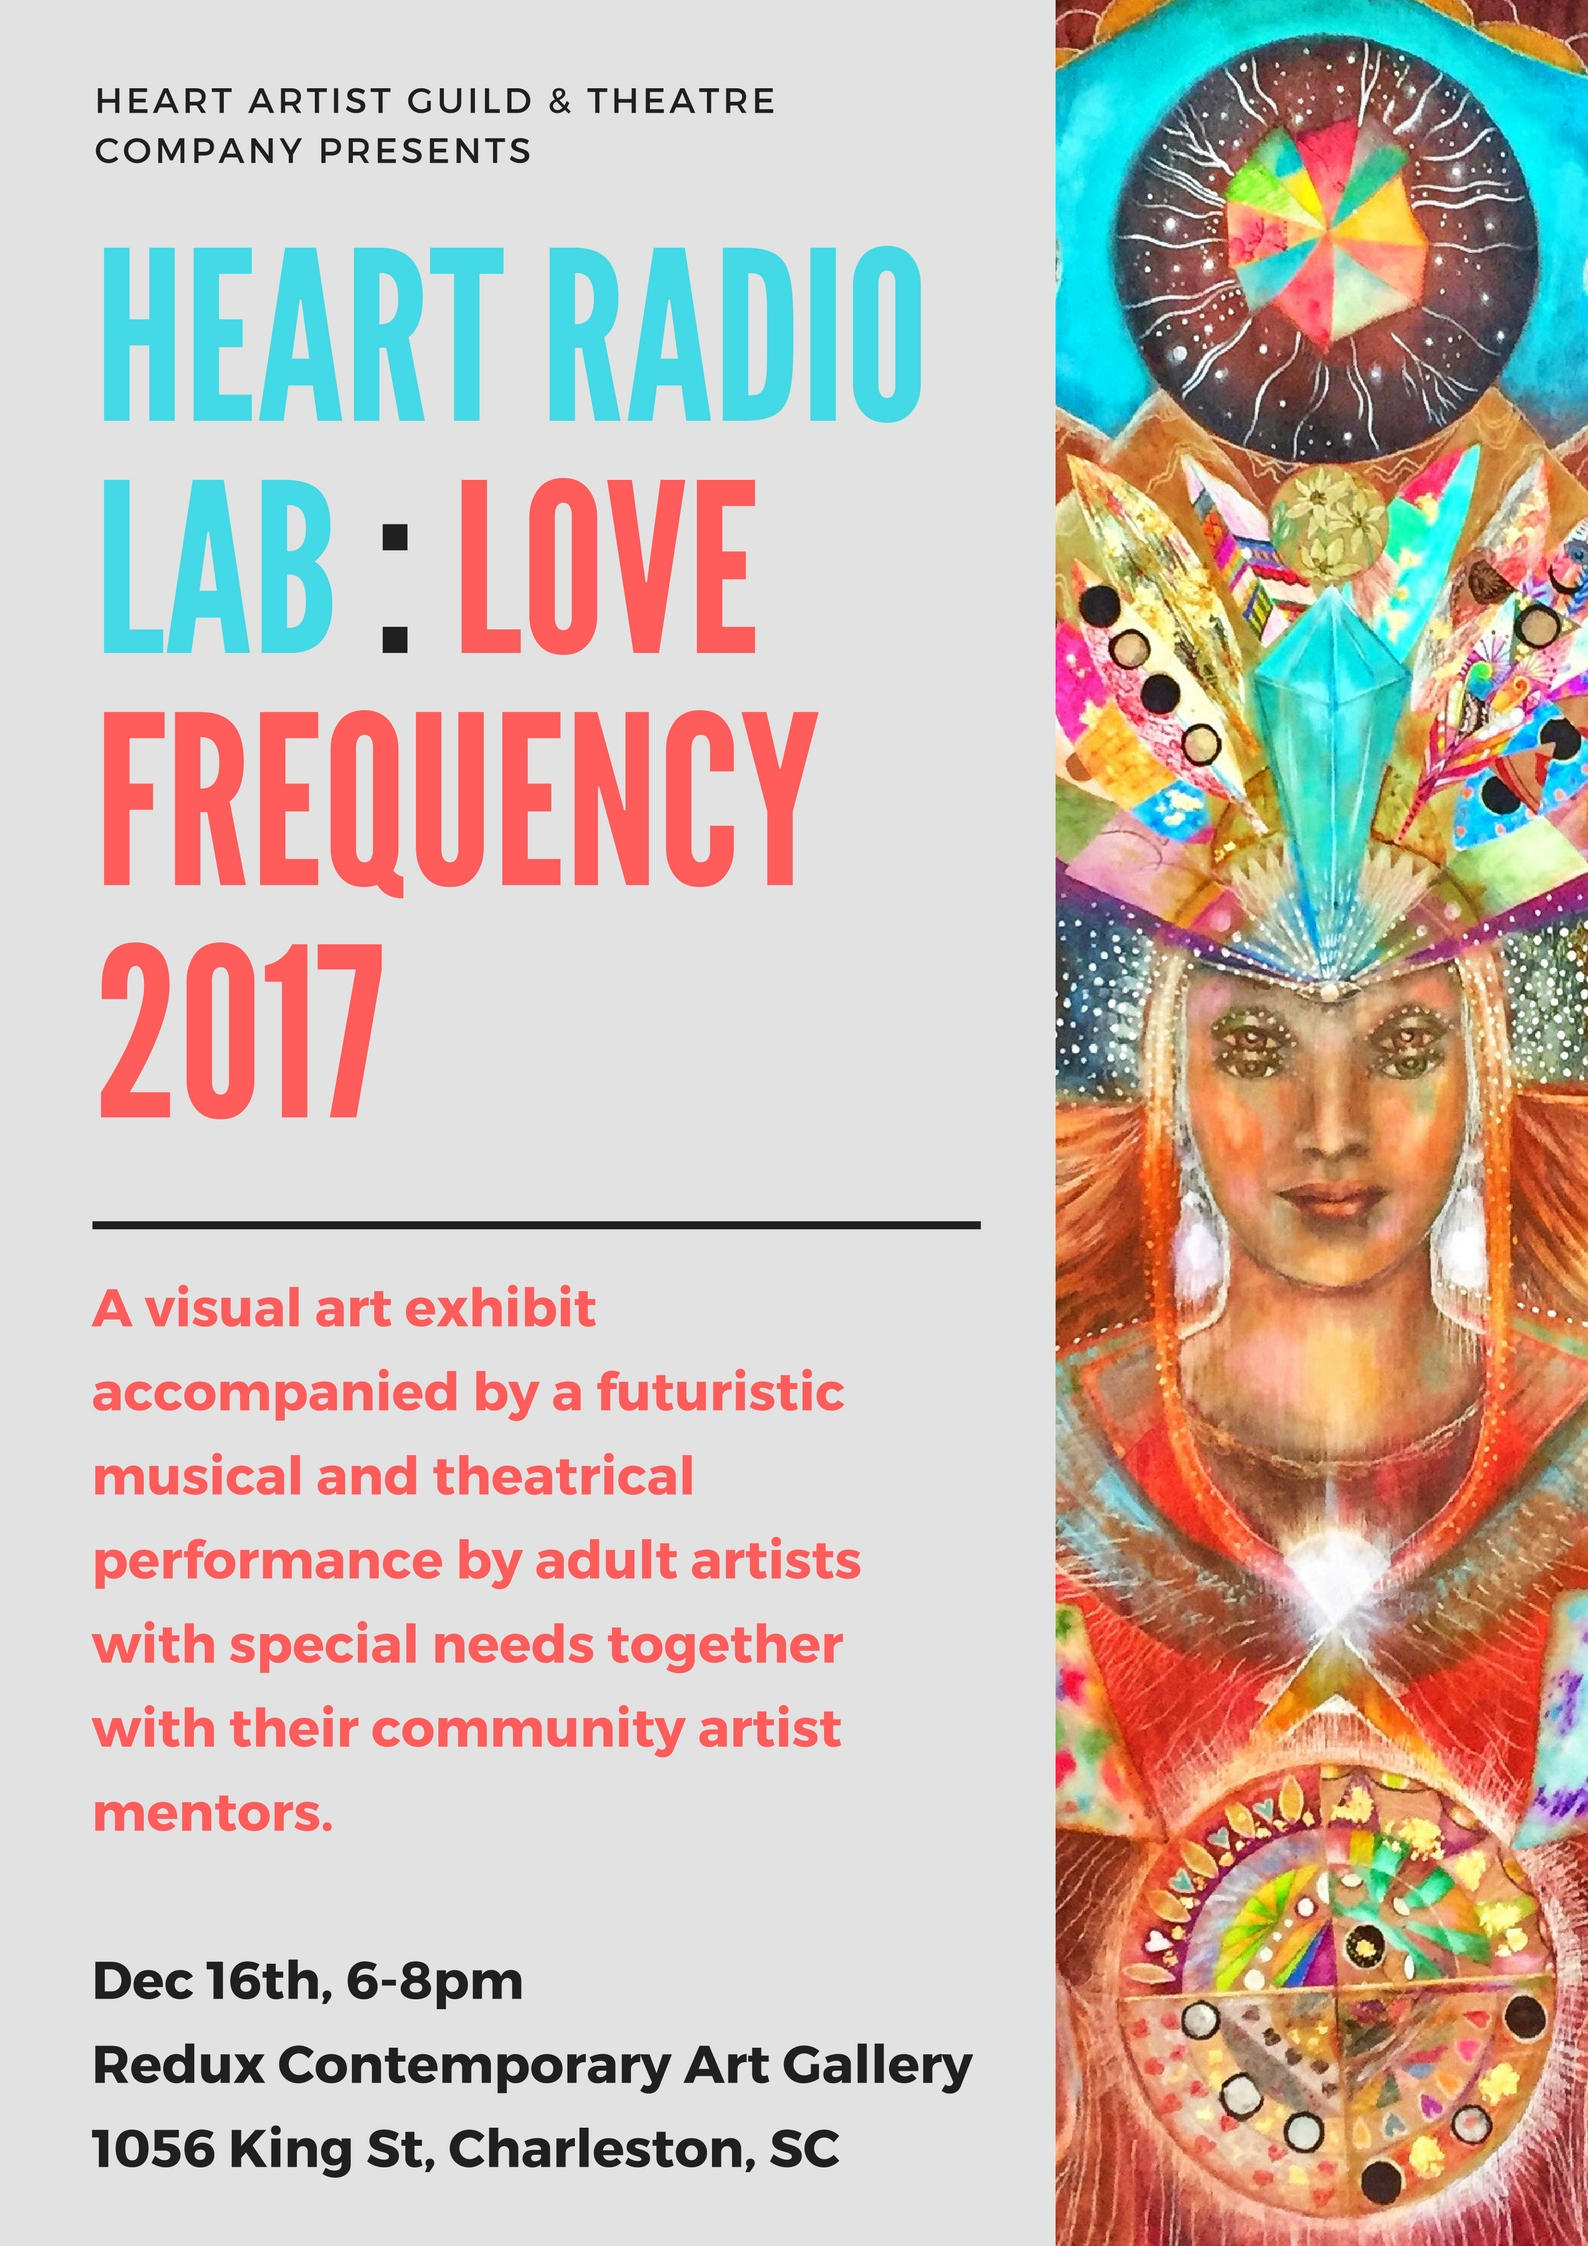 HEART Radio Lab- Love frequency 2017.jpg